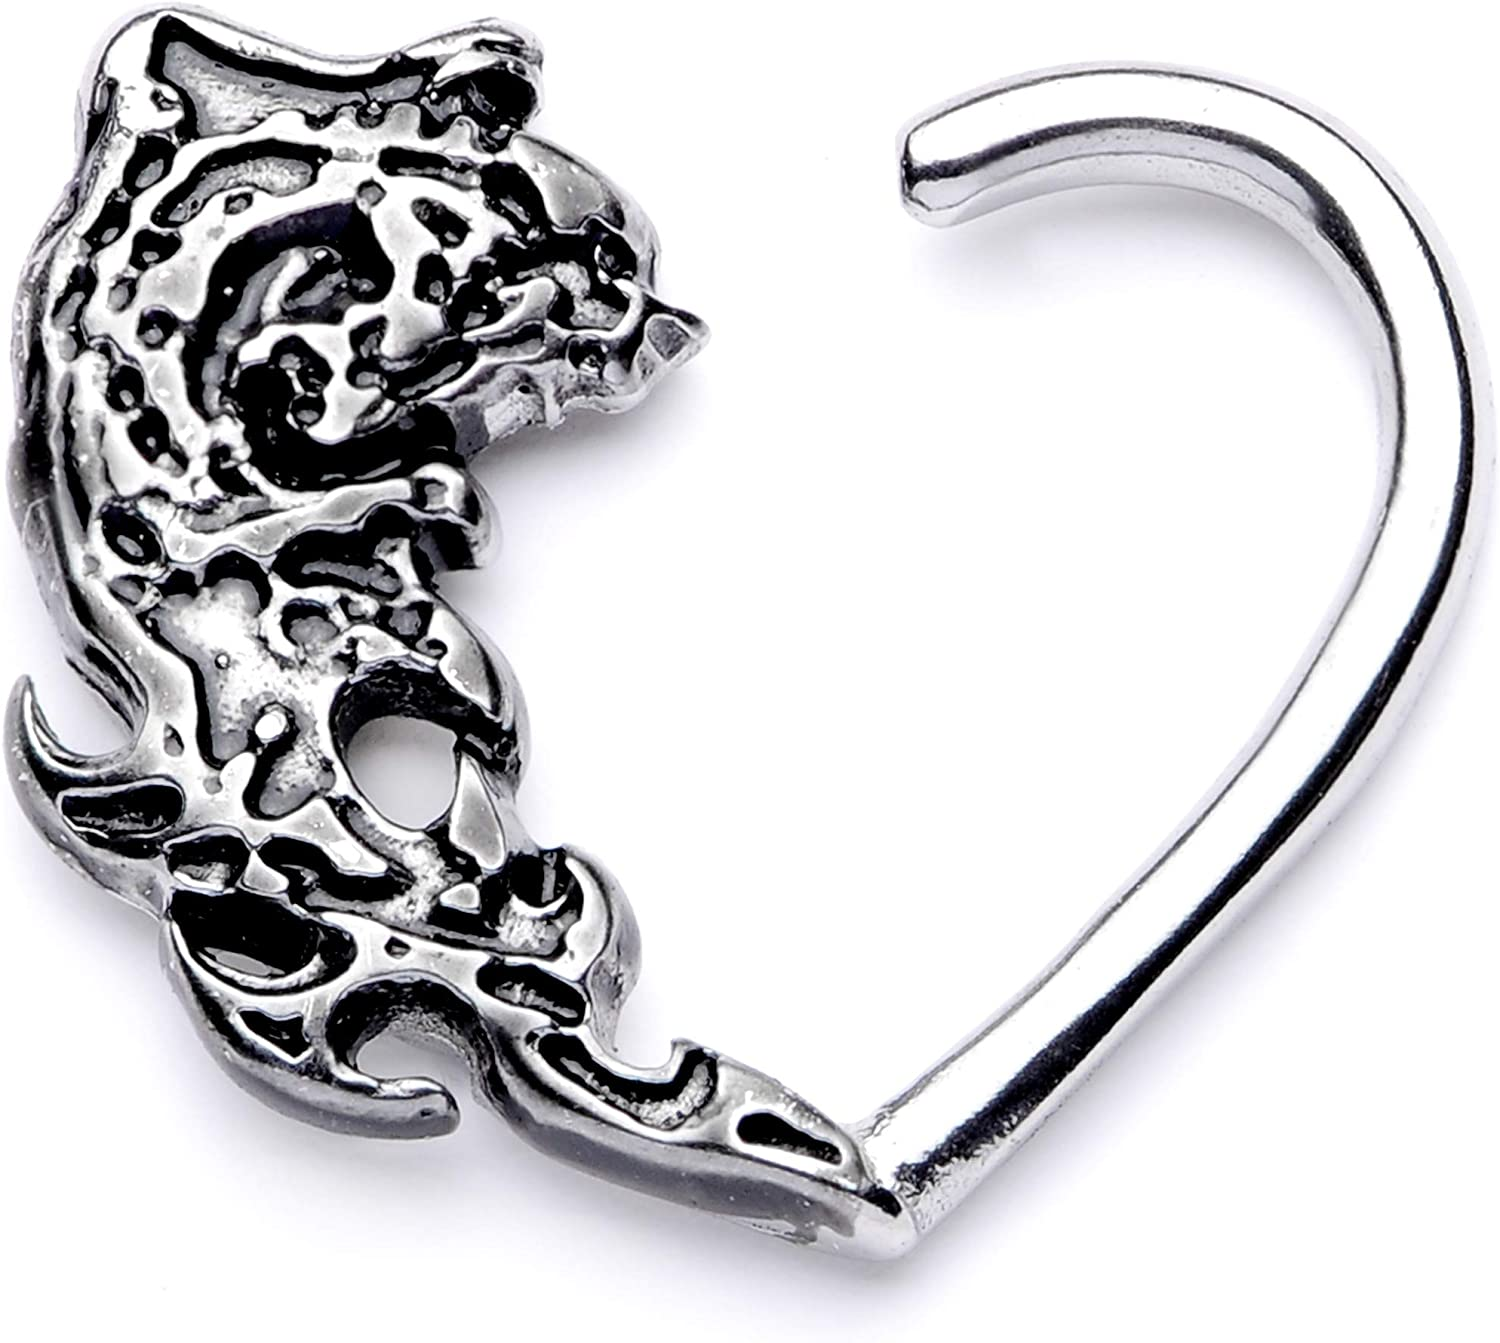 Body Candy 10mm Body Piercing Jewelry Stainless Steel 16G Right Closure Daith Heart Tribal Wave Tragus Earring 3/8